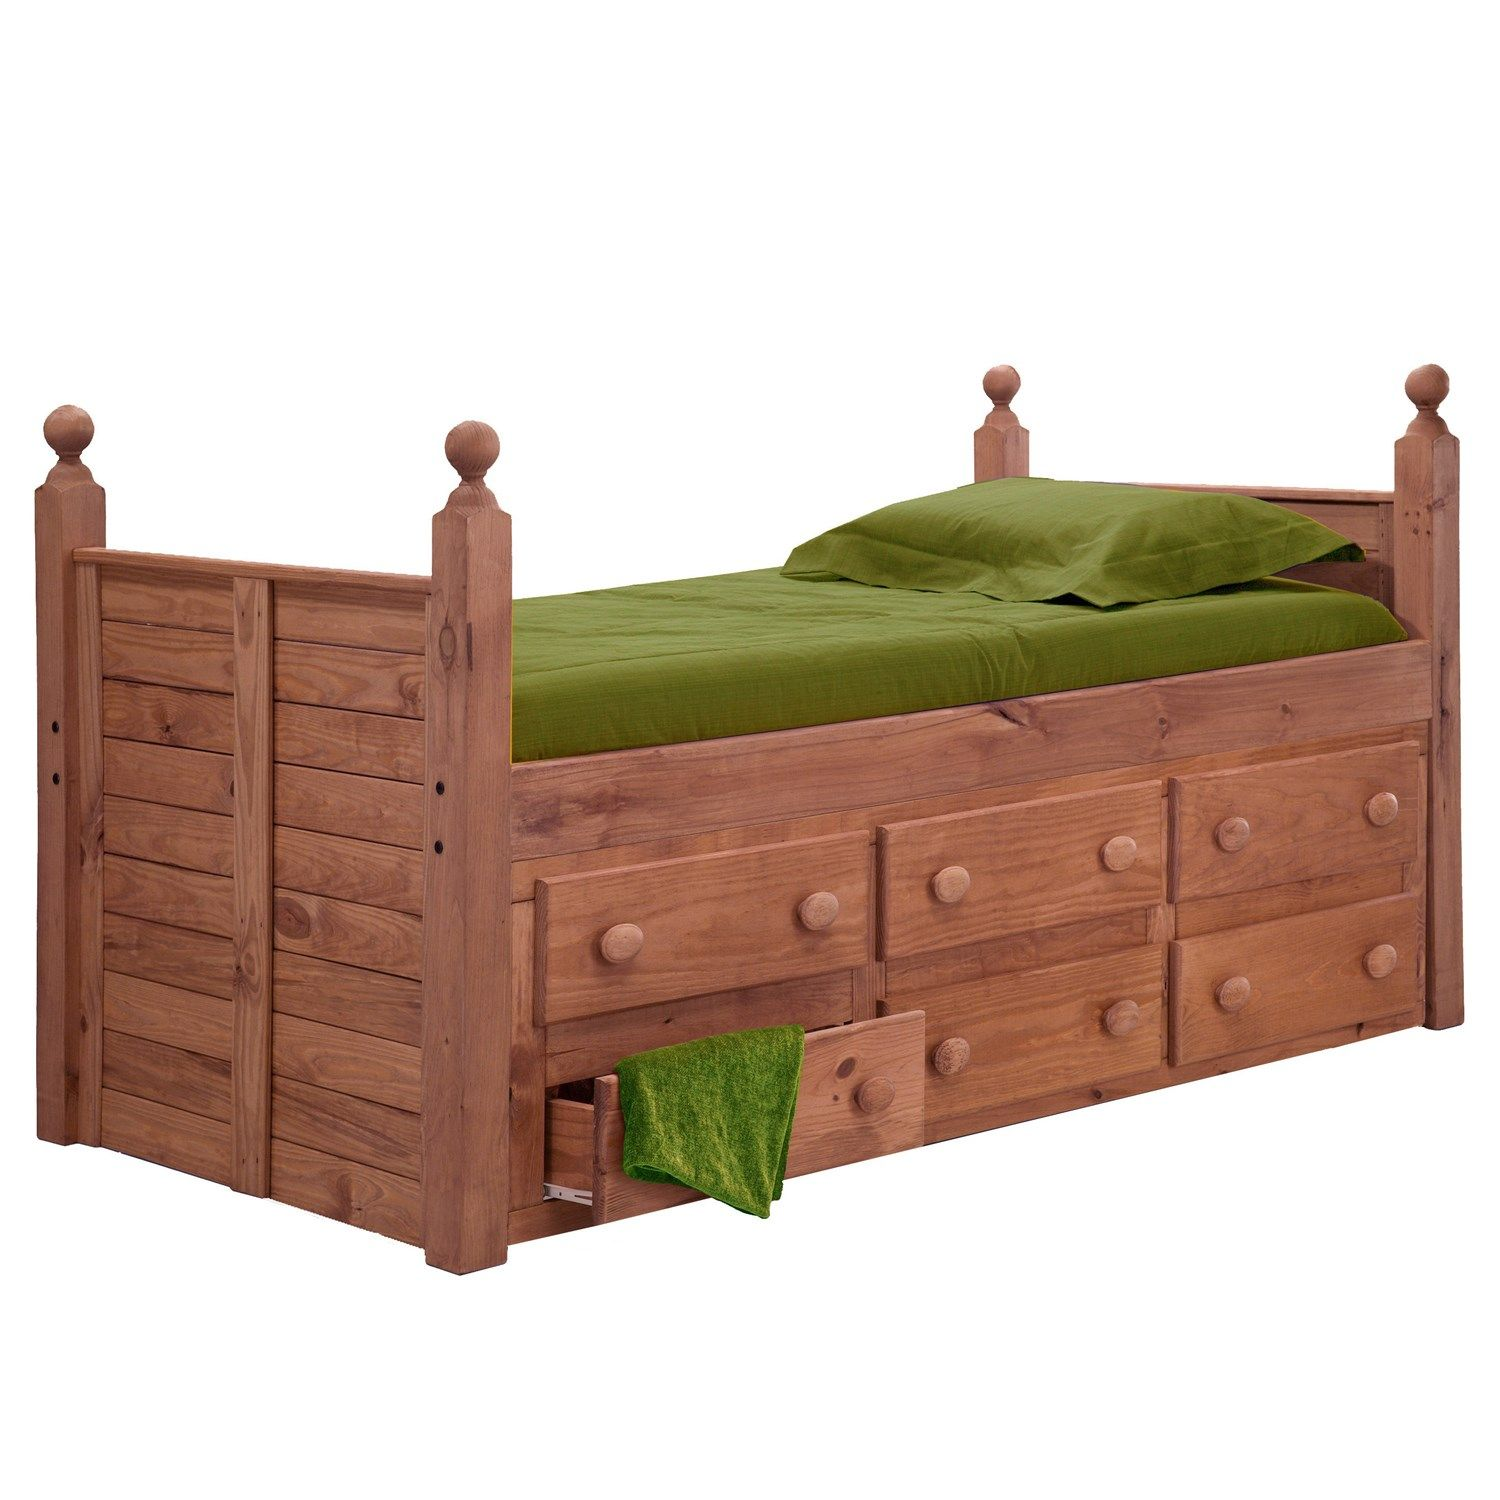 Chelsea Home Furniture 31950 Twin Panel Post Bed with 6